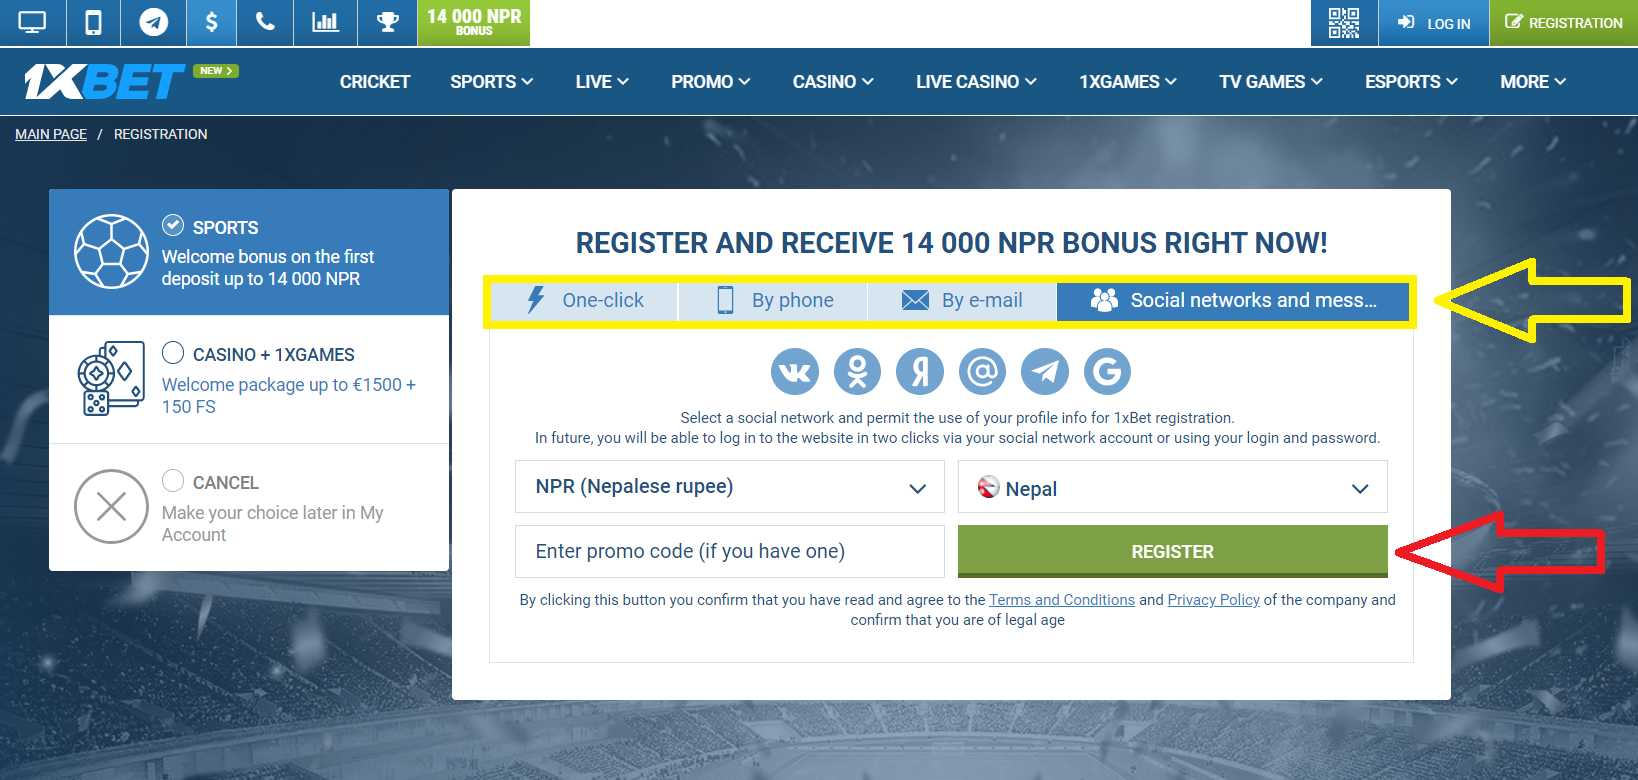 Create account from Nepal in 1XBET